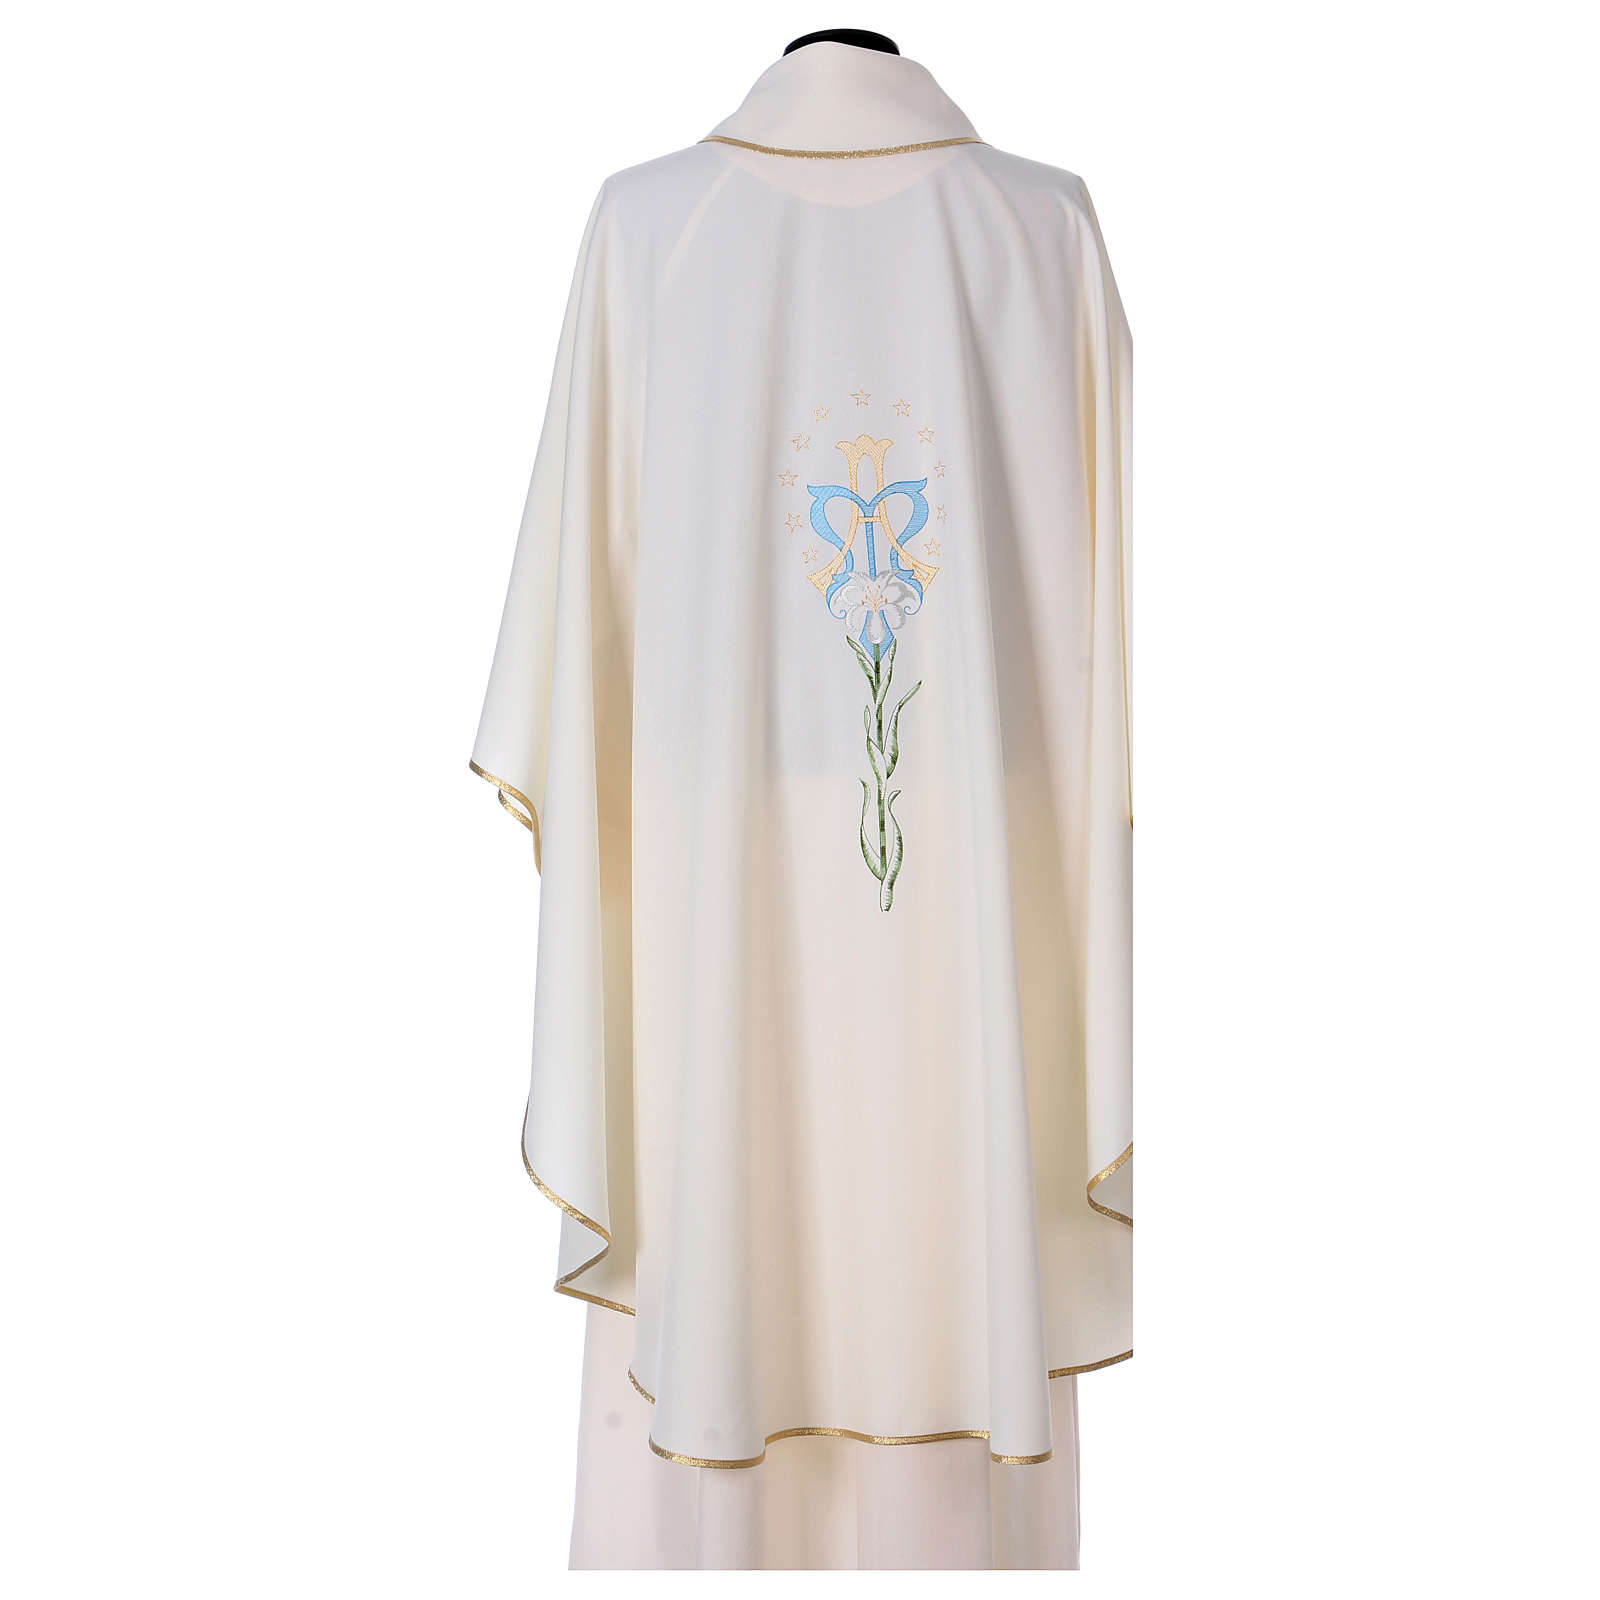 Chasuble with lily, stars and initials of Mary 4